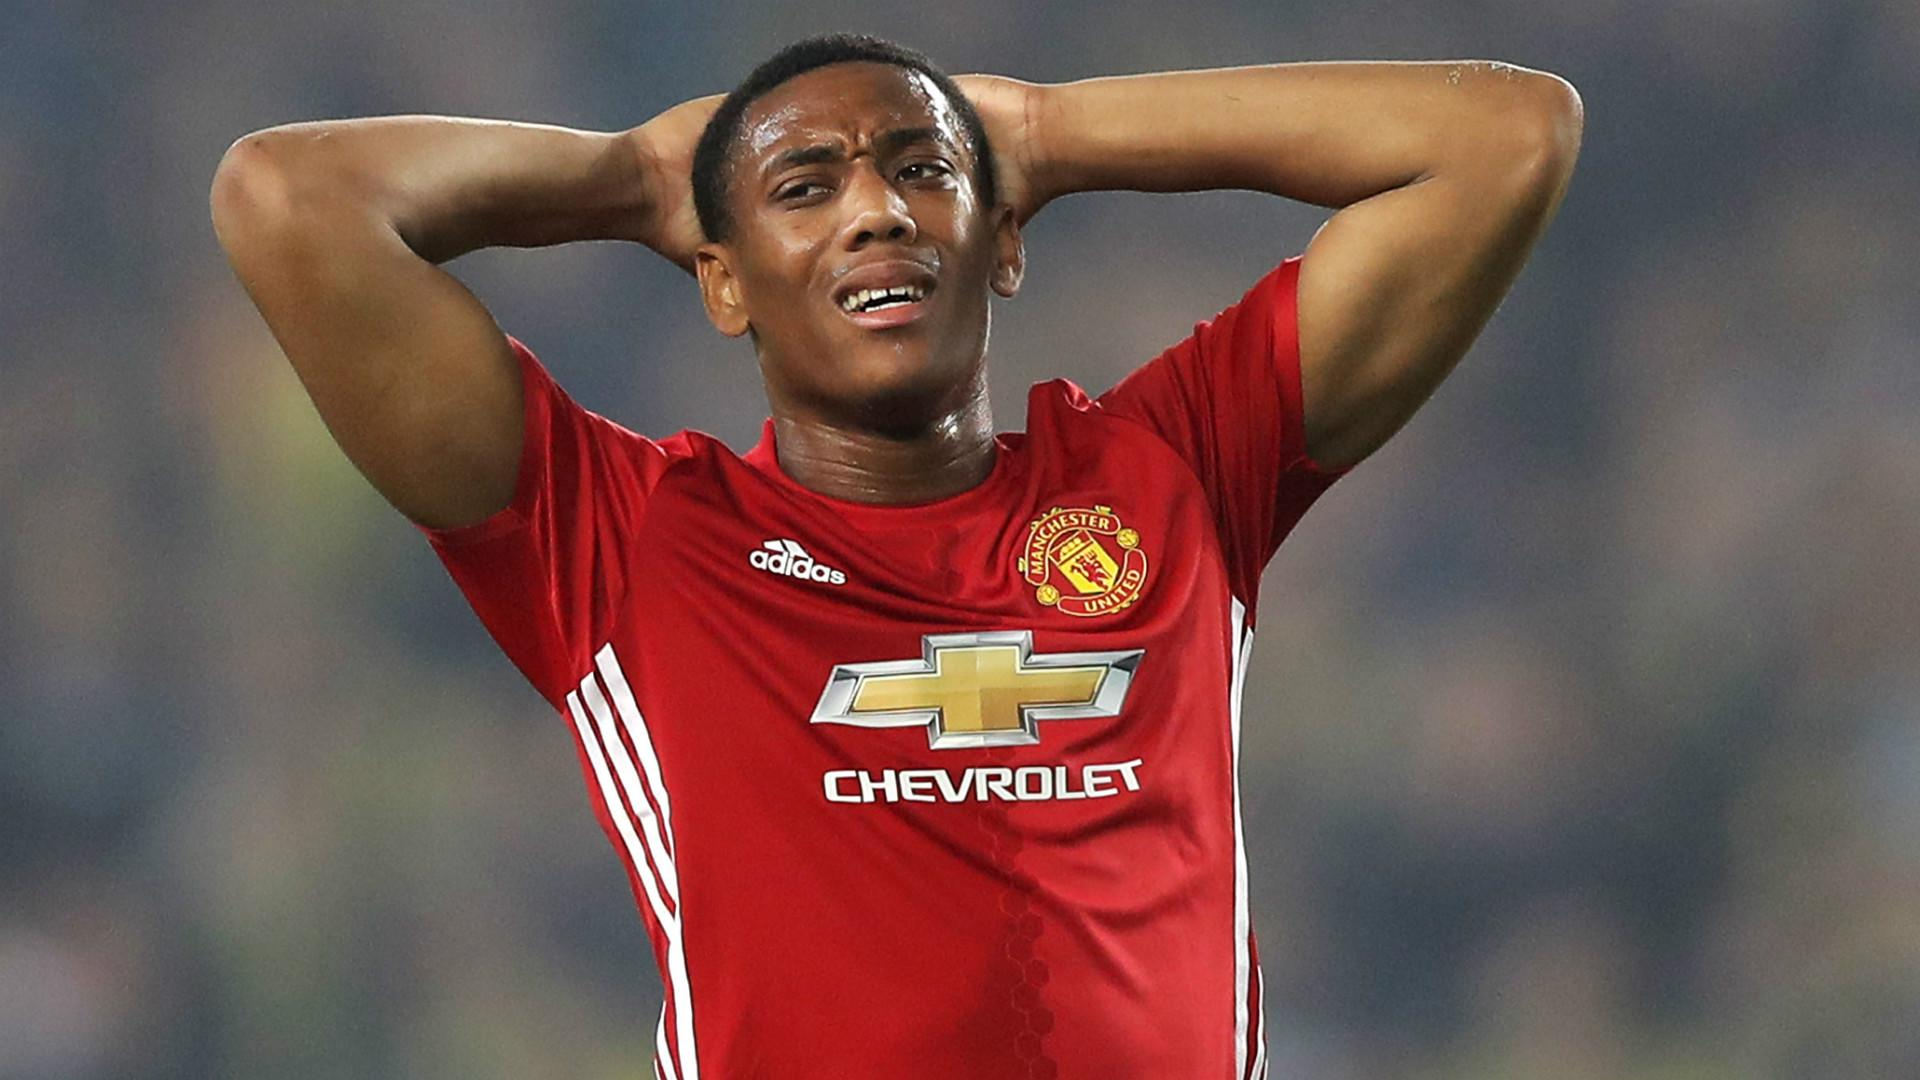 Premier League: Anthony Martial's camp furious with Manchester United boss Jose Mourinho